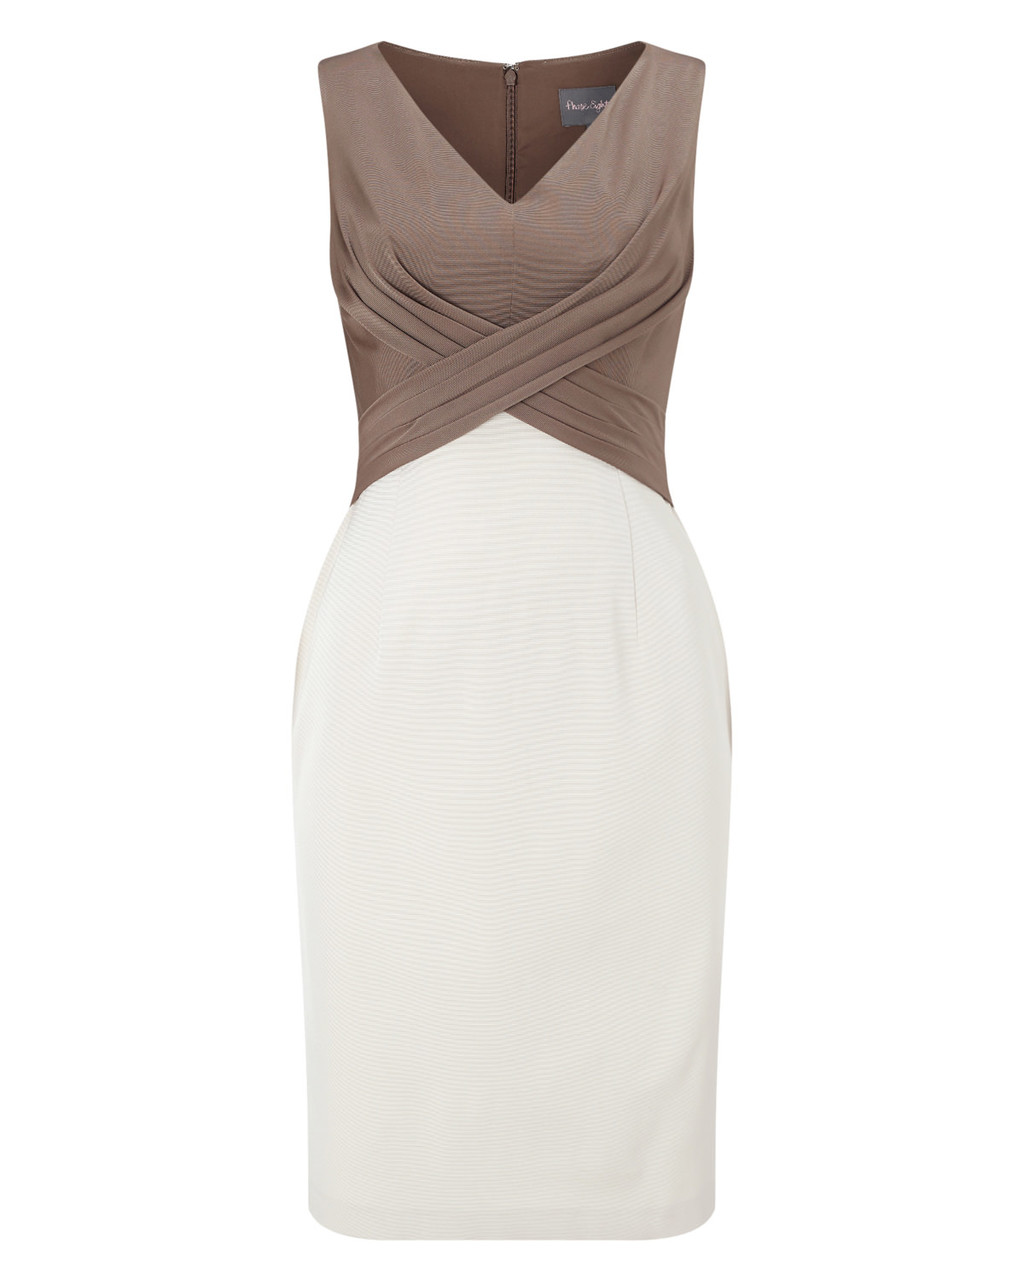 Hattie Dress - style: shift; neckline: v-neck; fit: tailored/fitted; sleeve style: sleeveless; secondary colour: white; predominant colour: taupe; occasions: evening; length: just above the knee; fibres: viscose/rayon - stretch; sleeve length: sleeveless; pattern type: fabric; pattern: colourblock; texture group: jersey - stretchy/drapey; multicoloured: multicoloured; season: a/w 2015